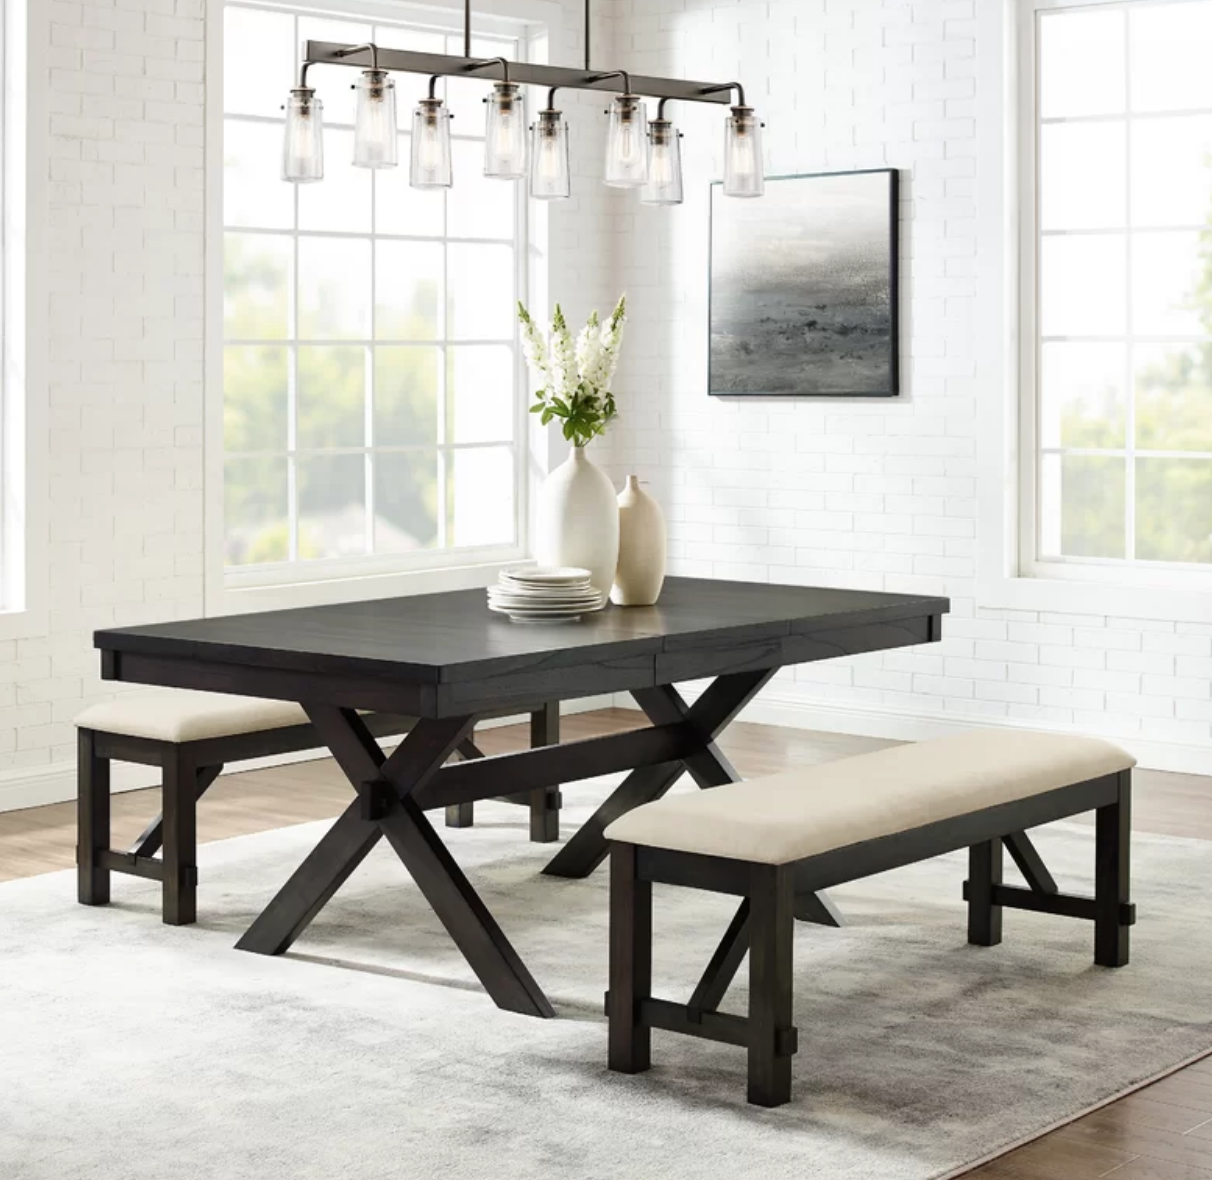 Extendable 3 Piece Dining Set With Upholstered Benches